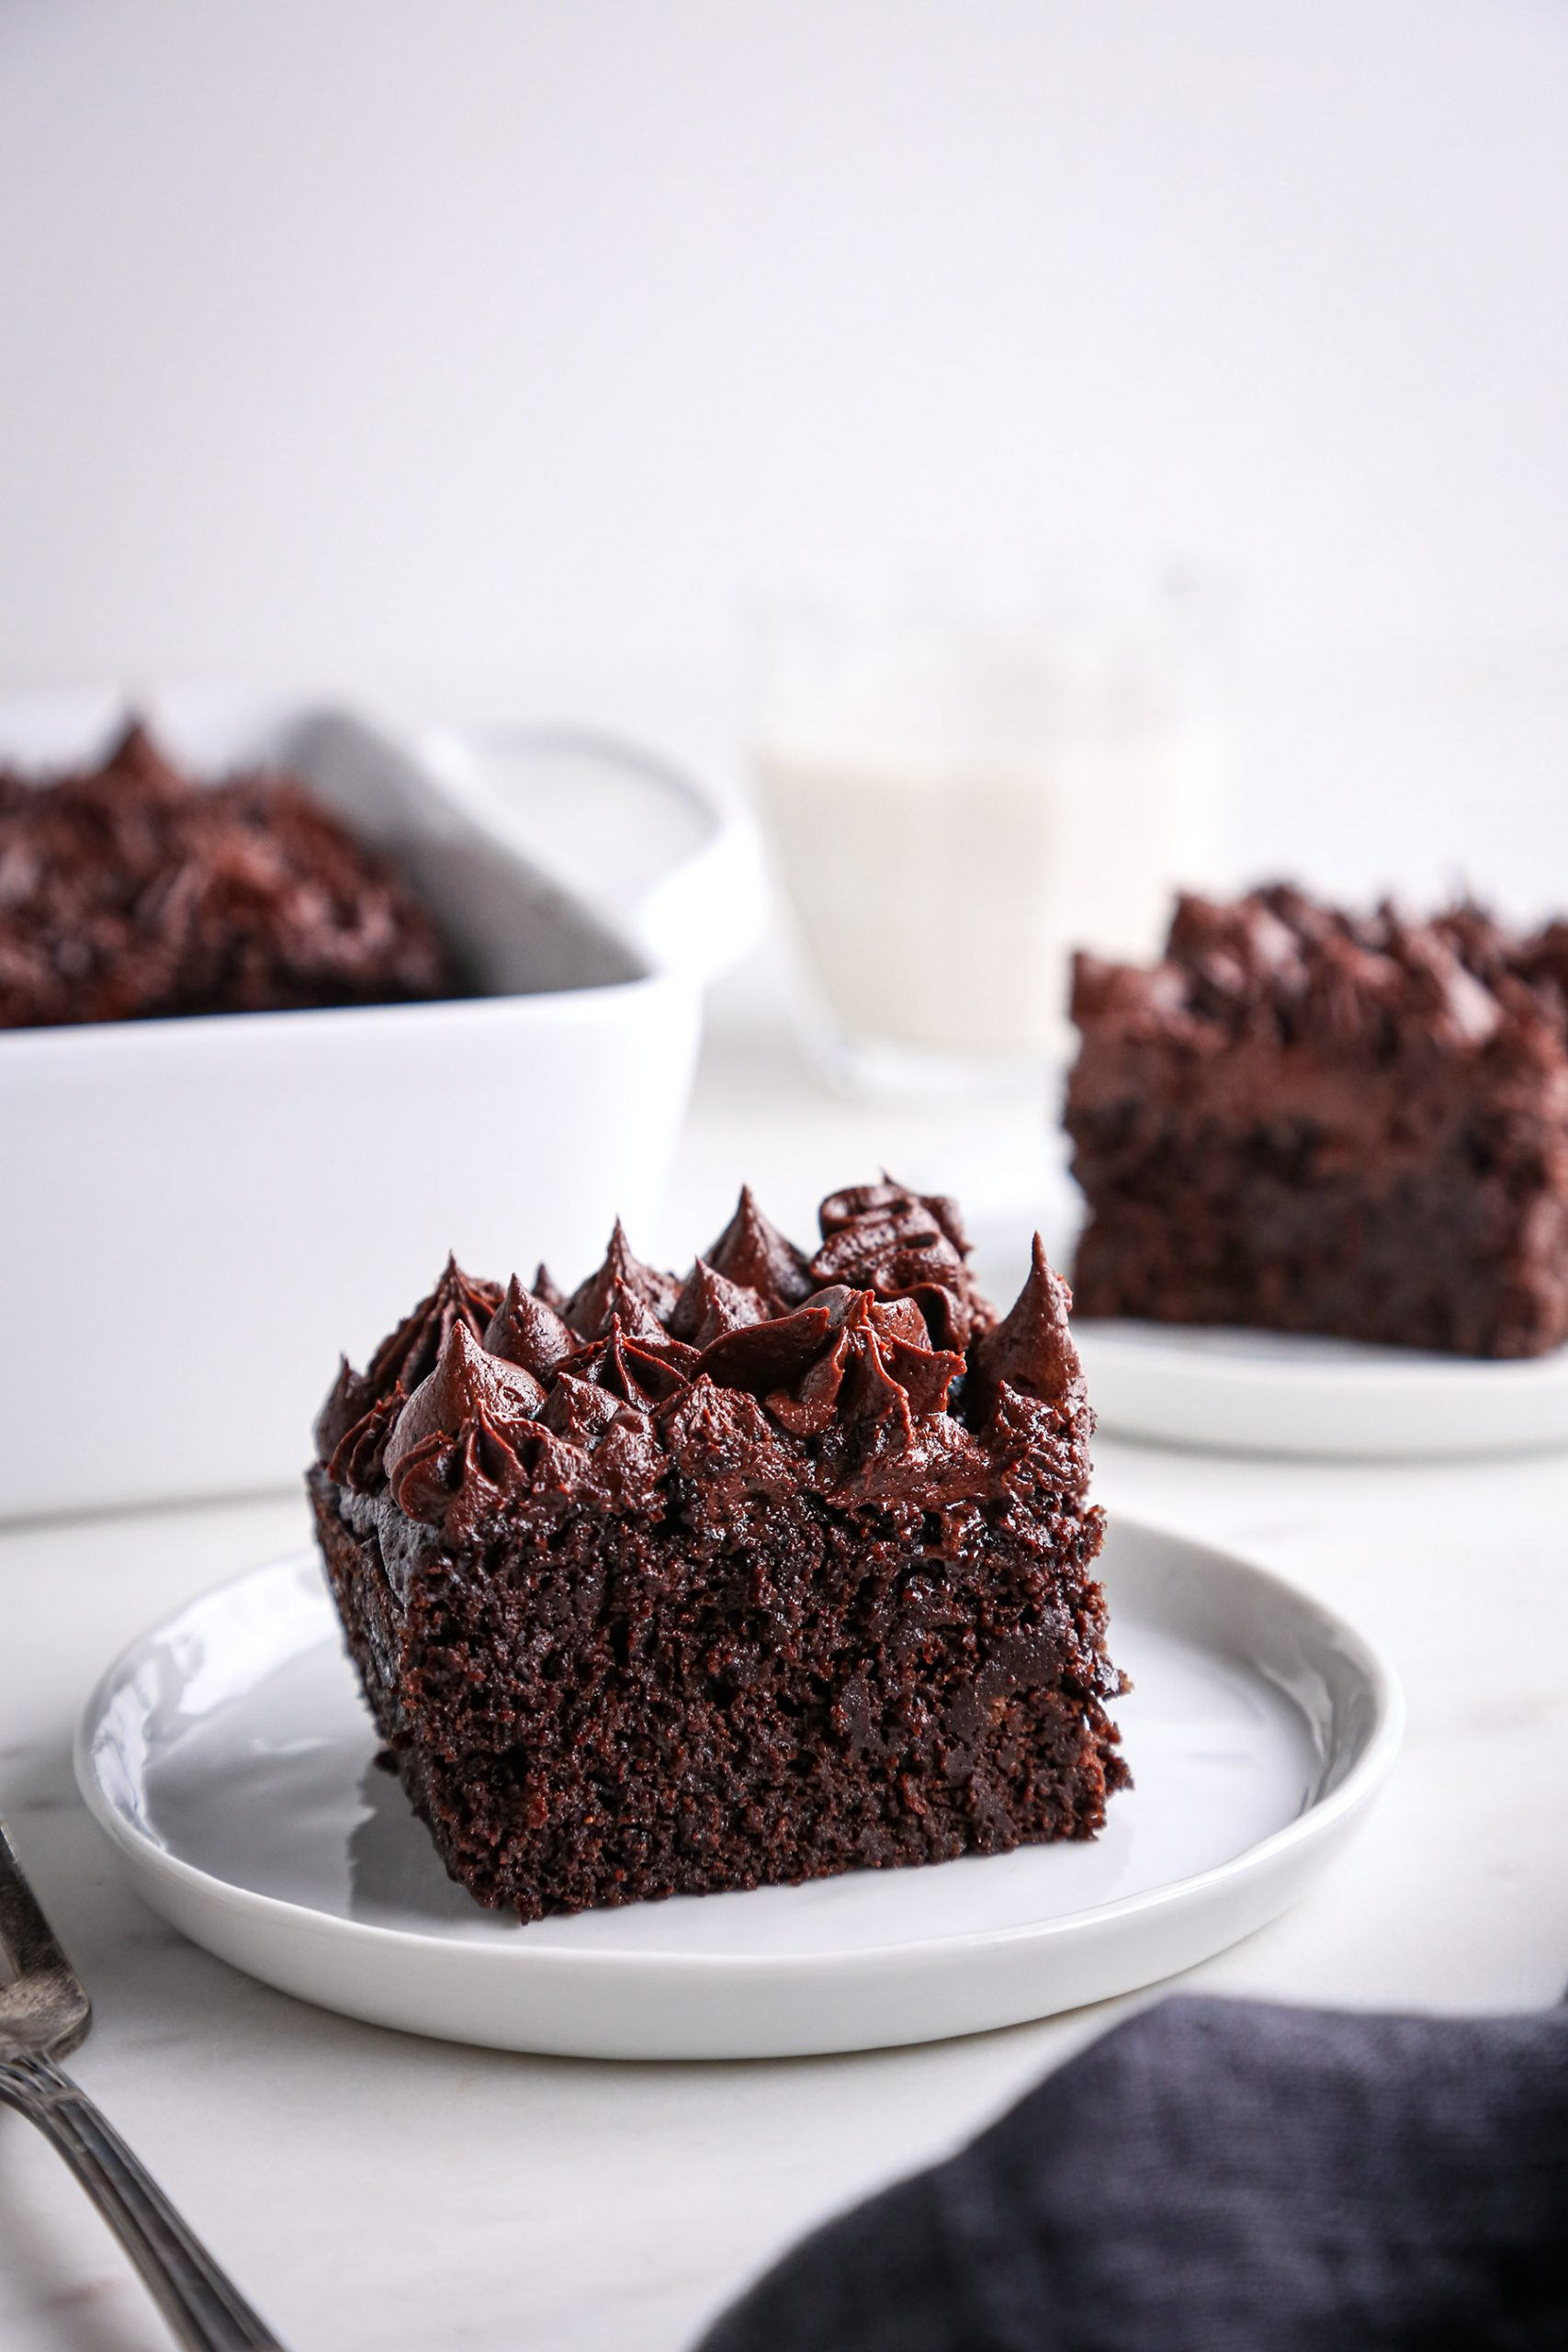 Chocolate Snack Cake Slices with Chocolate Buttercream | Vegan with Gluten Free Option